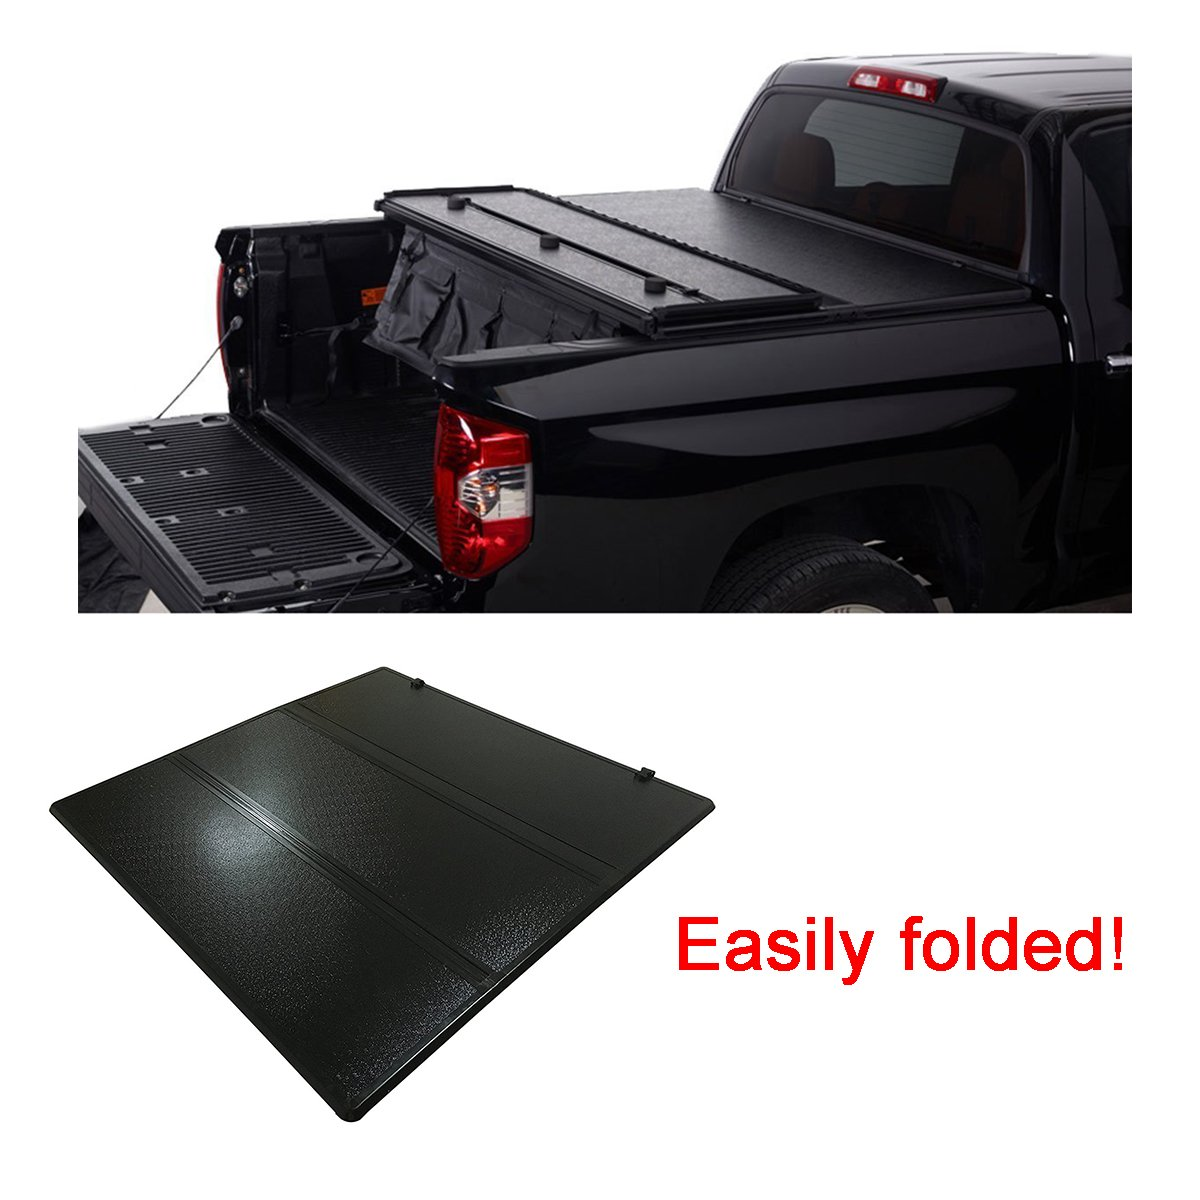 Fuyu Hard Solid Tonneau Cover For Ford F 150 2004 2018 With 5 5ft 66in Bed Not Fit Raptor Series Amazon In Car Motorbike